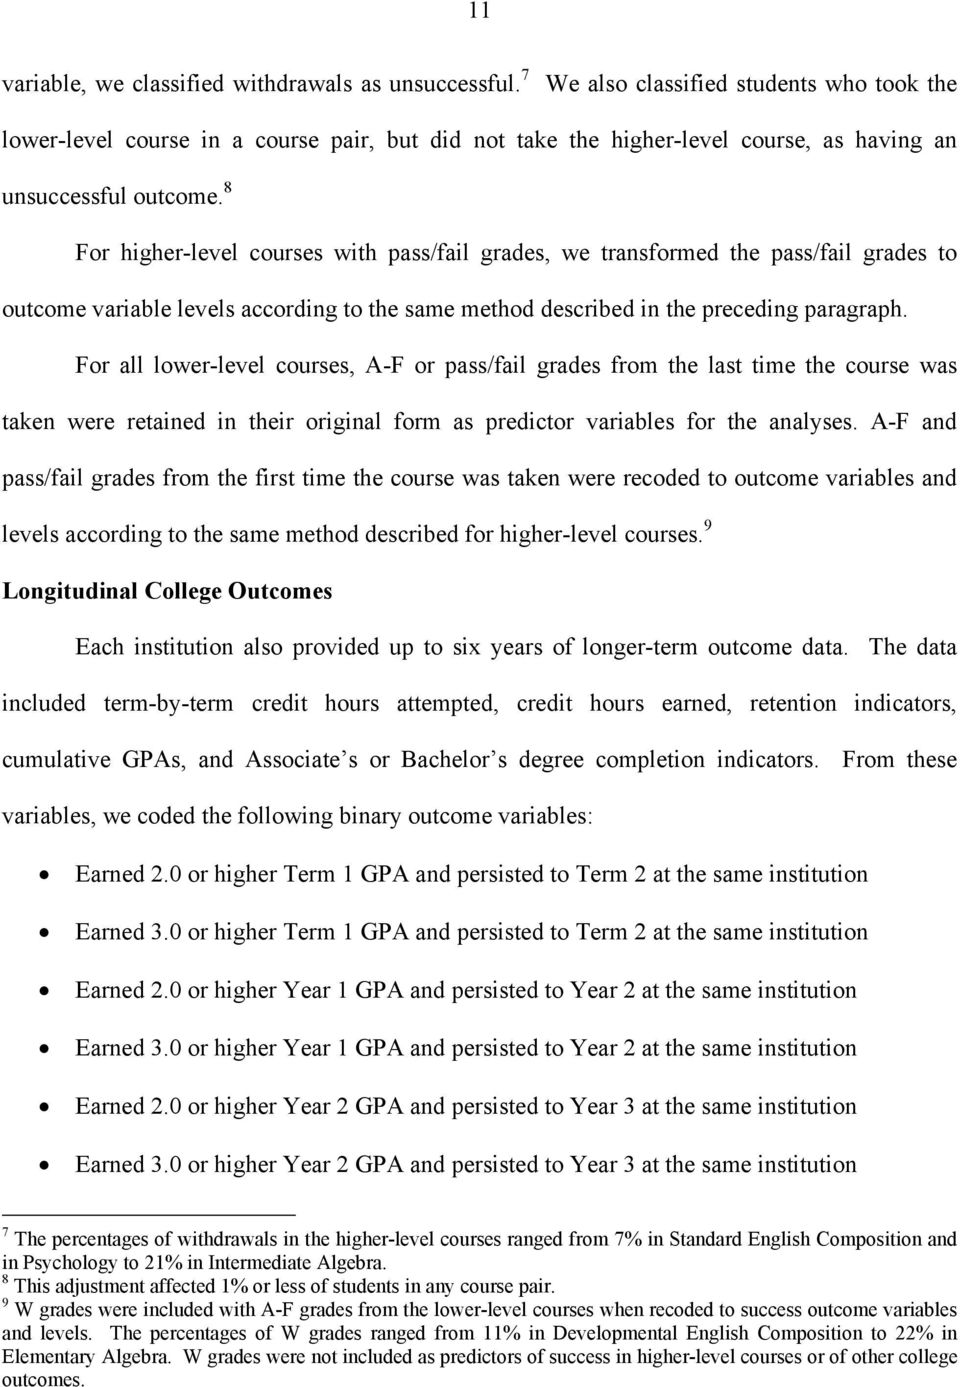 8 For -level courses with pass/fail grades, we transformed the pass/fail grades to outcome variable levels according to the same method described in the preceding paragraph.